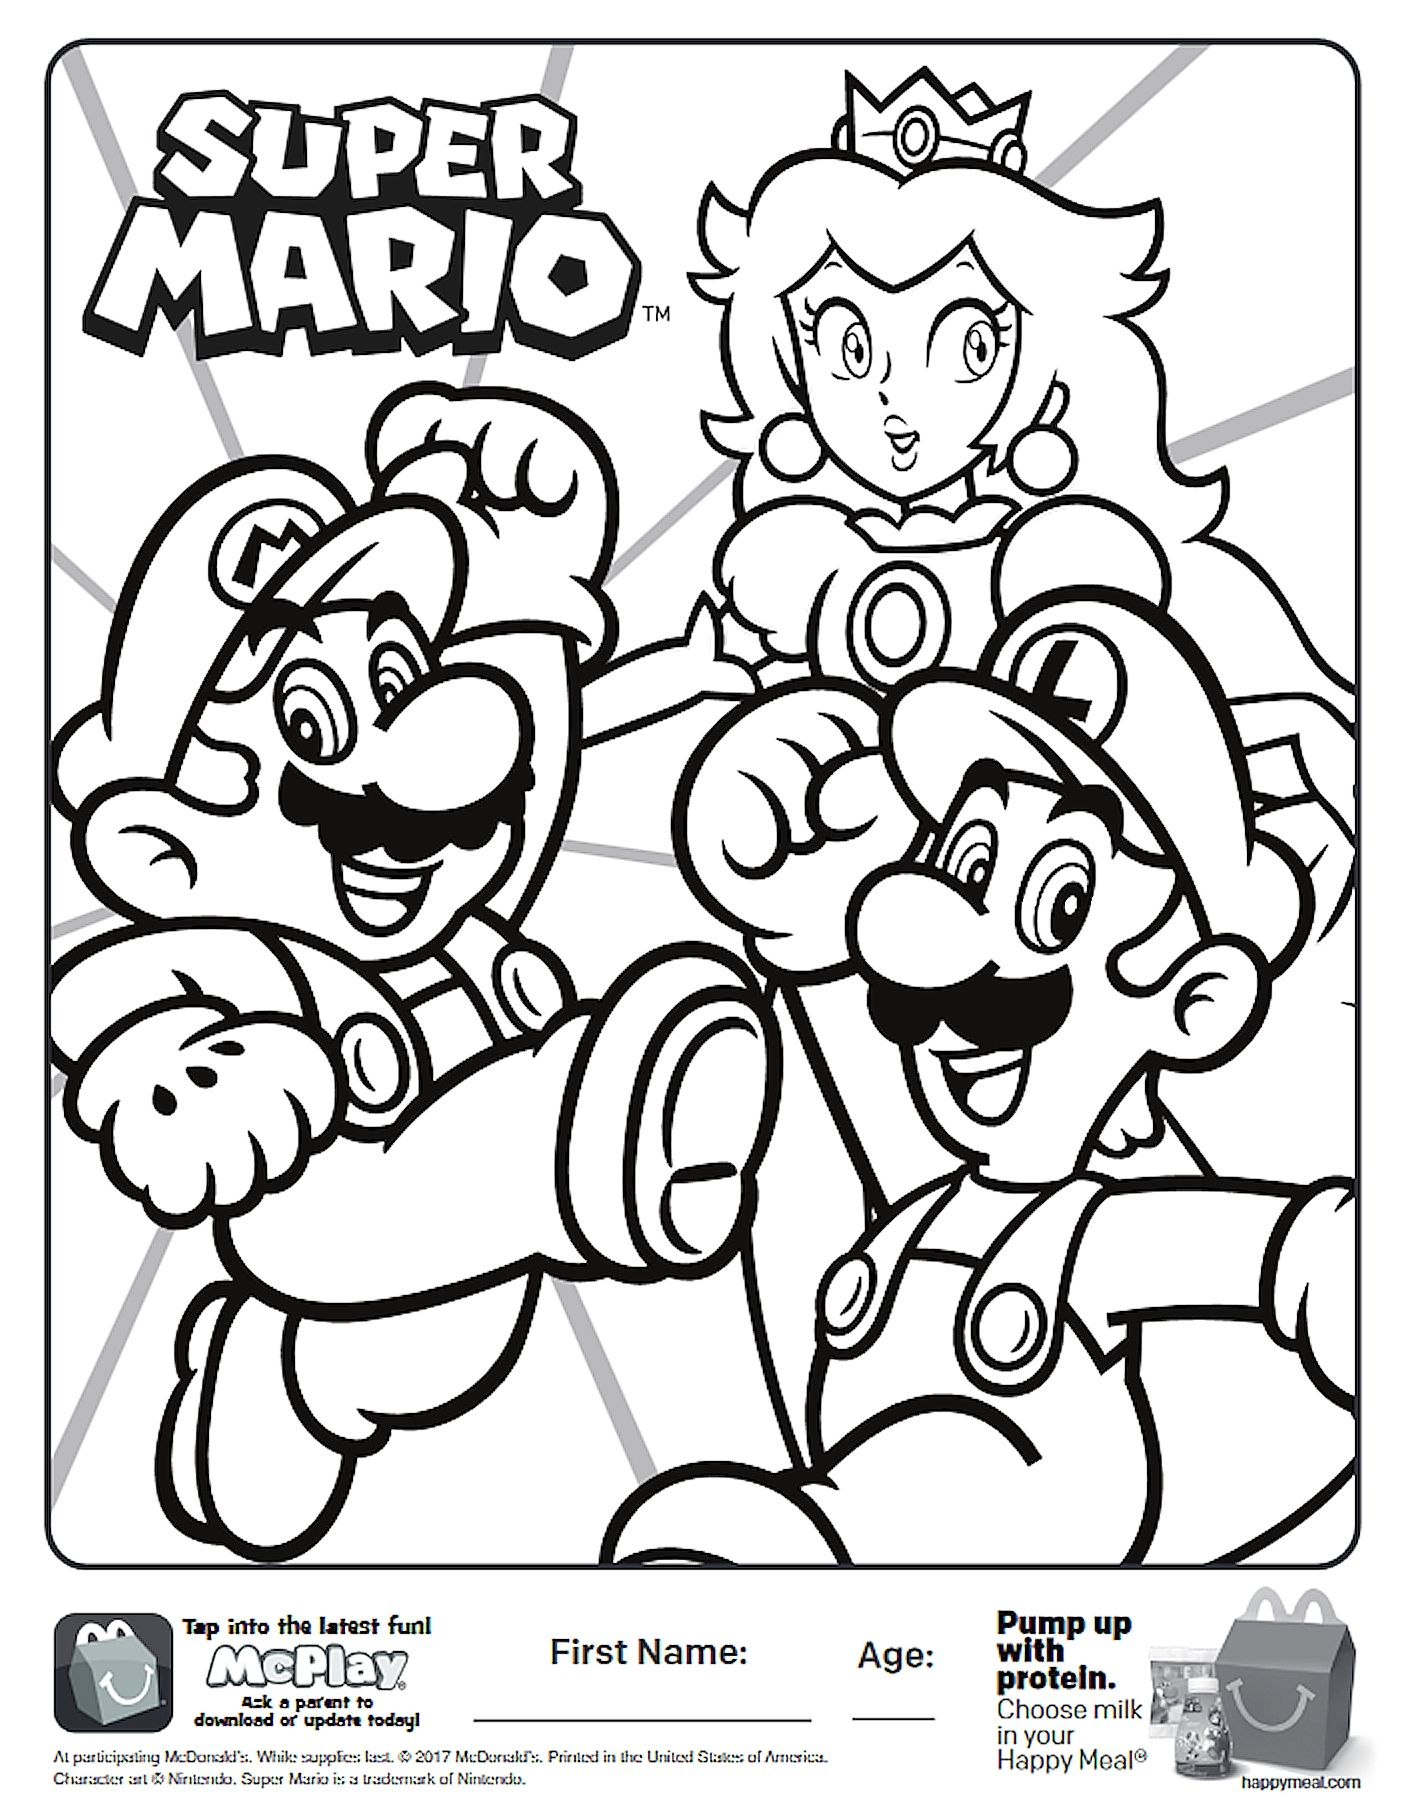 Here is the Happy Meal Super Mario Coloring Page the picture to see my